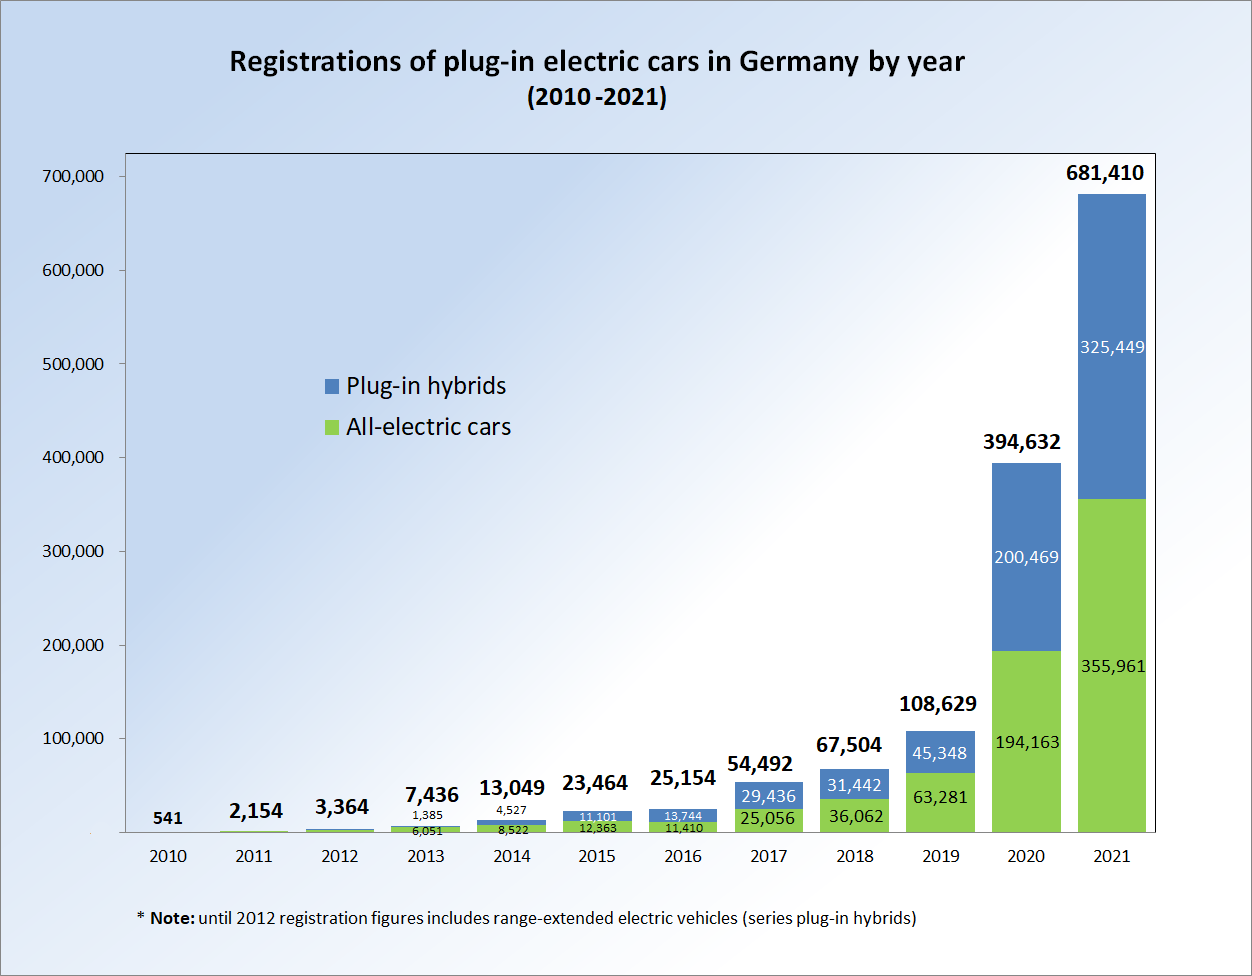 72efe713a0bd44 Plug-in electric vehicles in Germany - Wikipedia